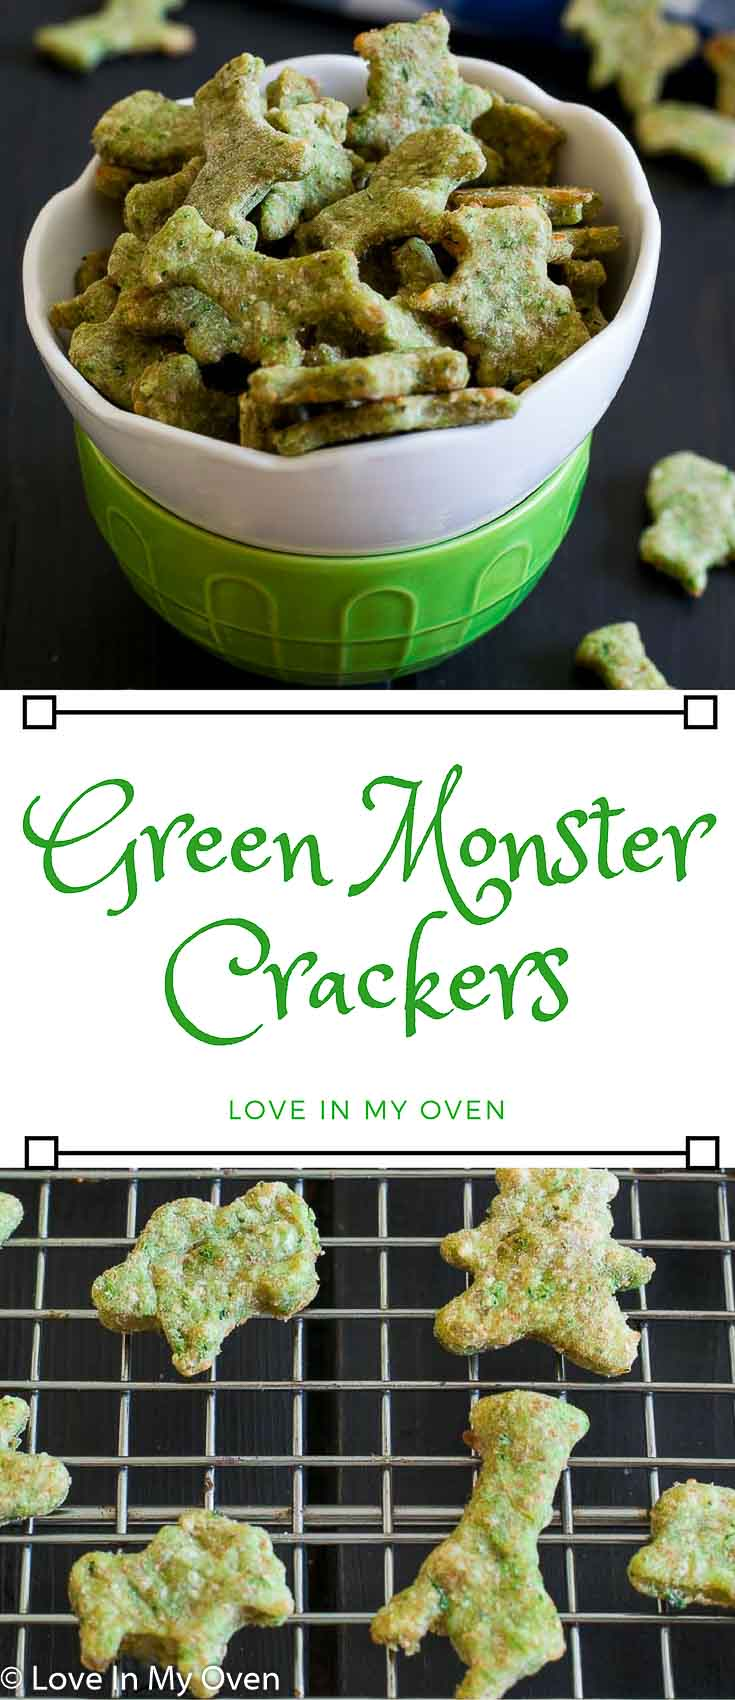 Bite-sized crackers full of spinach and complemented by parmesan cheese make for a nice, light snack!